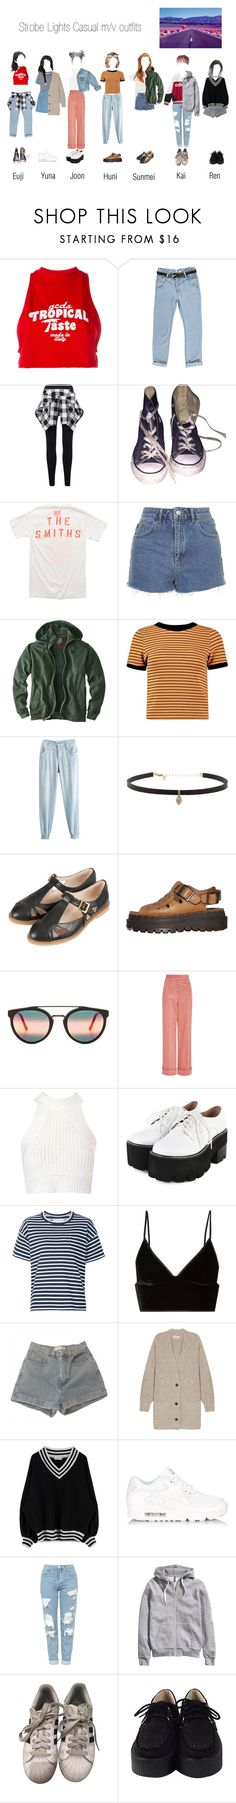 """""""Strobe Lights // Casual mv"""" by official-angel ❤ liked on Polyvore featuring GCDS, Boohoo, Converse, Opening Ceremony, Topshop, Woolrich, Chicnova Fashion, Carbon & Hyde, Skechers and RetroSuperFuture"""